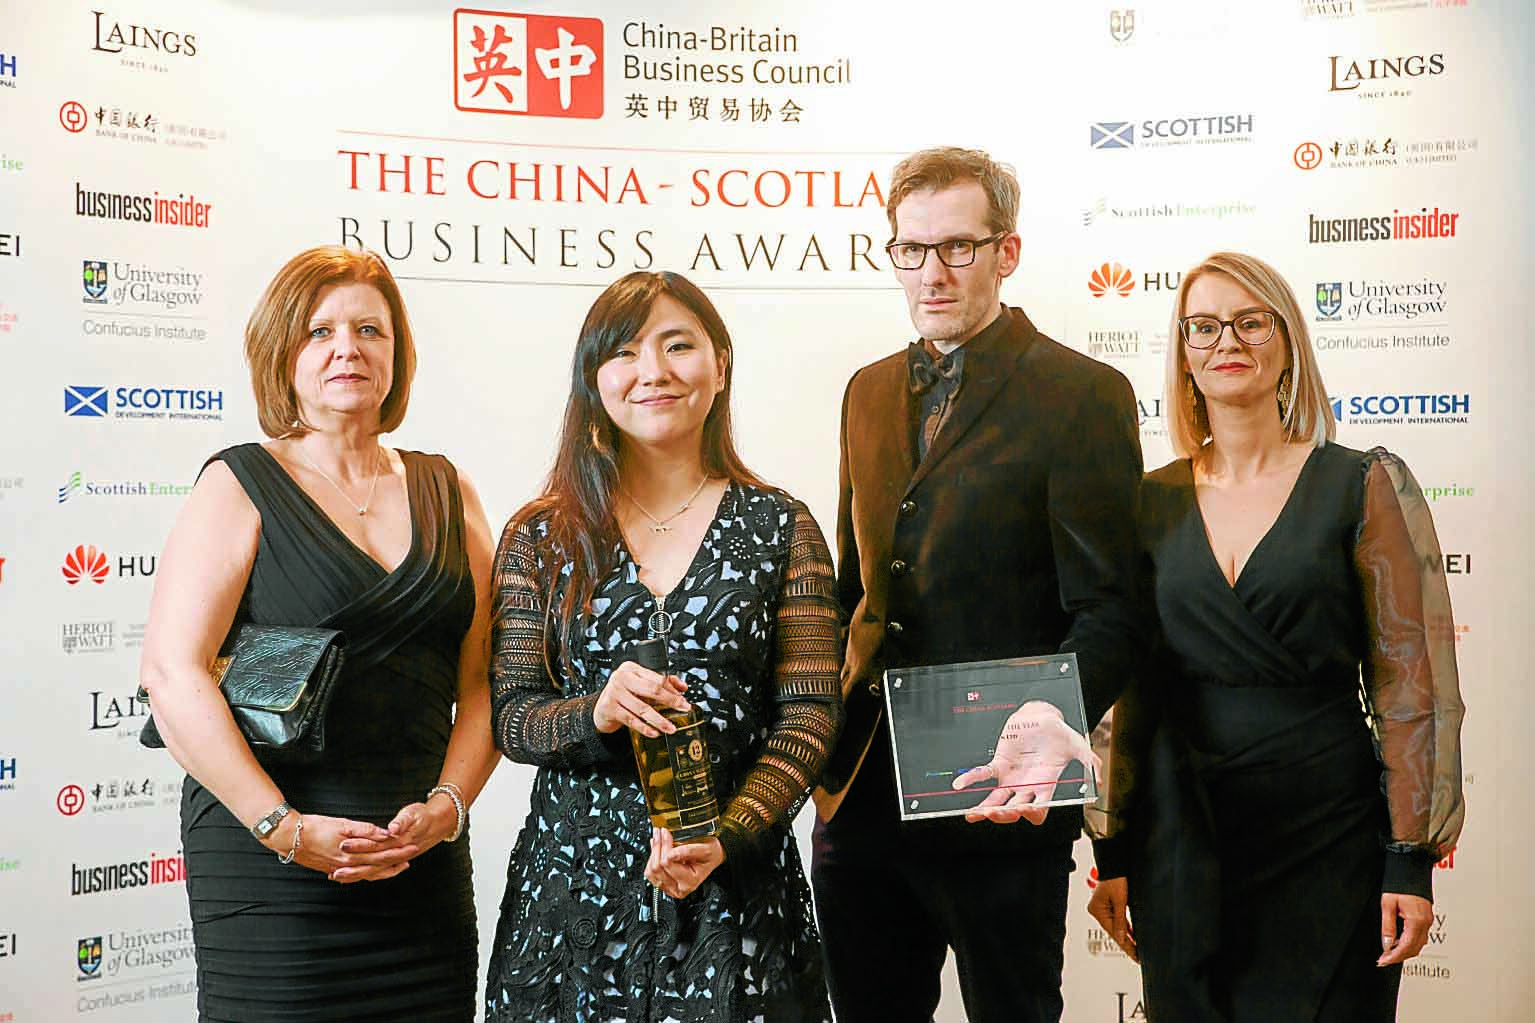 Gretna Green recognised for its warm welcome